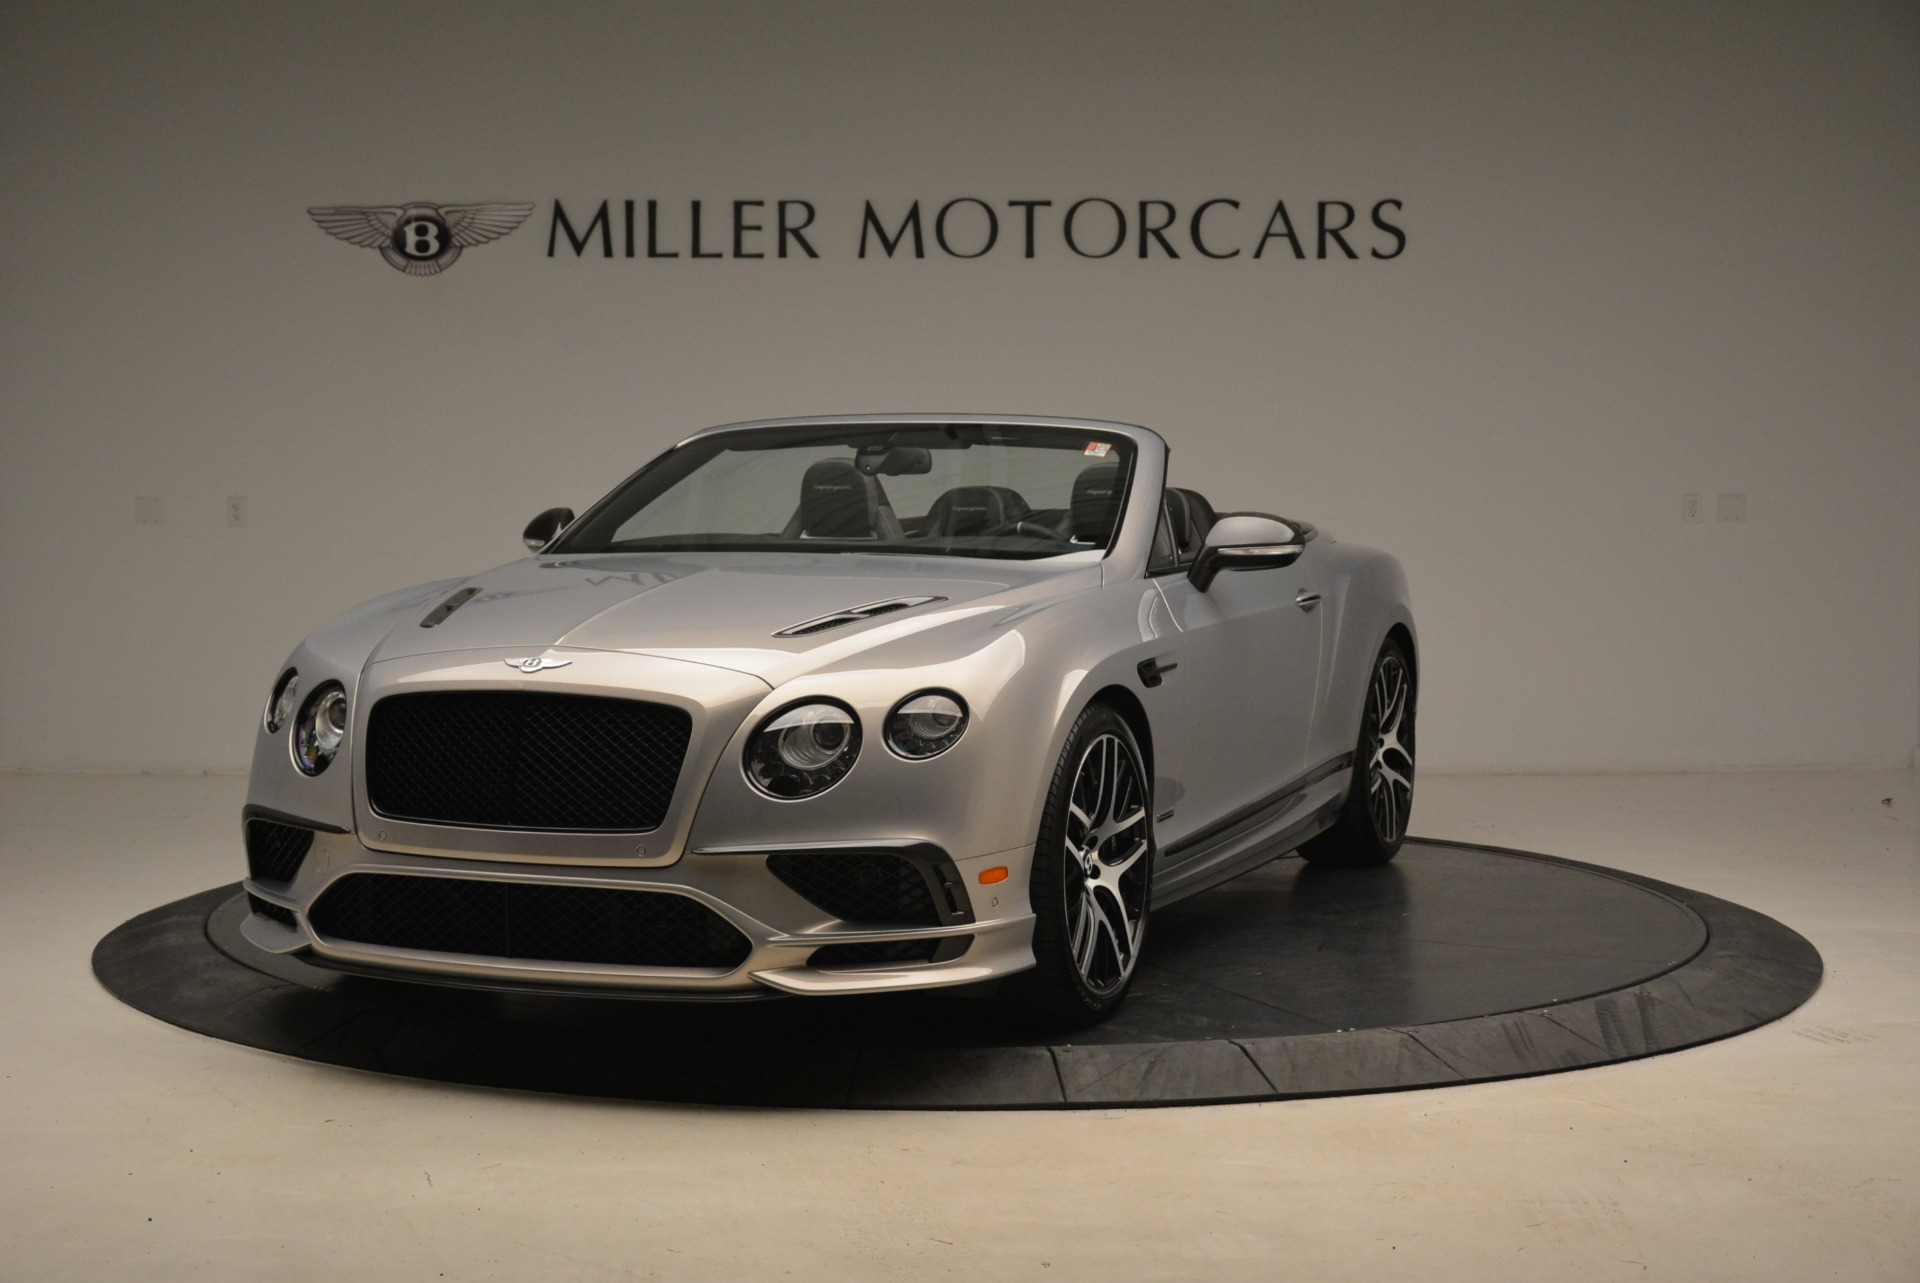 Used 2018 Bentley Continental GT Supersports Convertible for sale Sold at Bentley Greenwich in Greenwich CT 06830 1